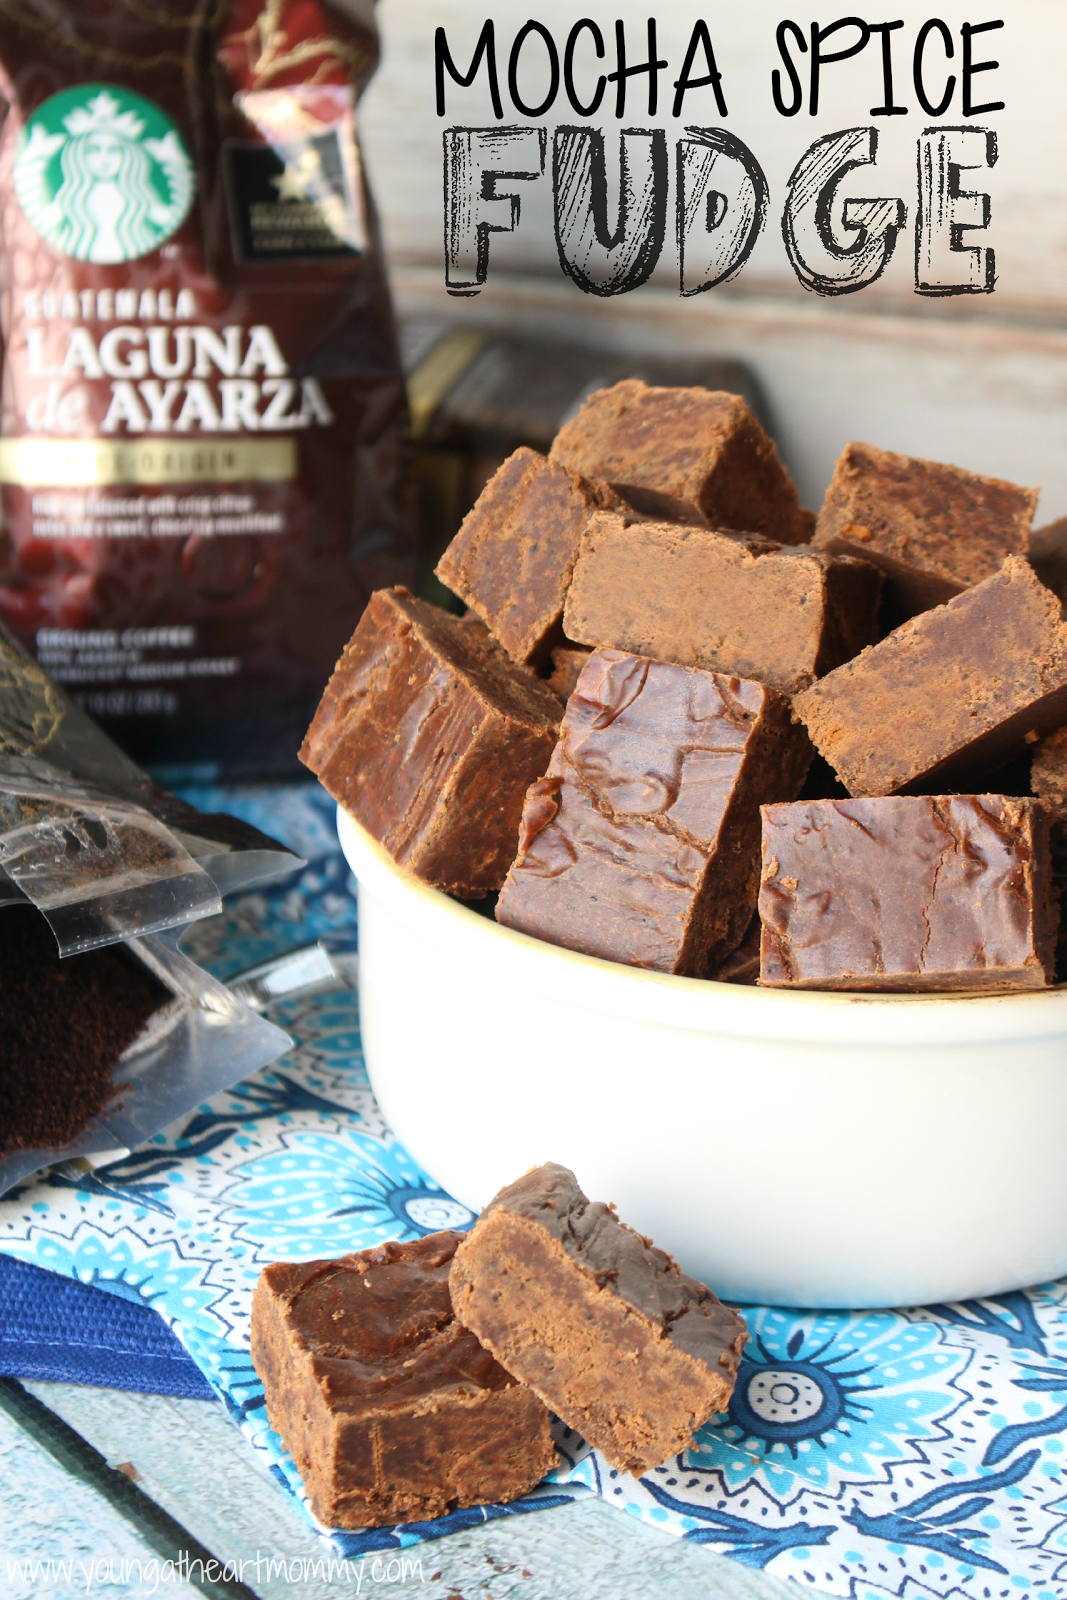 Mocha Spice Fudge recipe using Starbucks Single Origin Coffee Blends